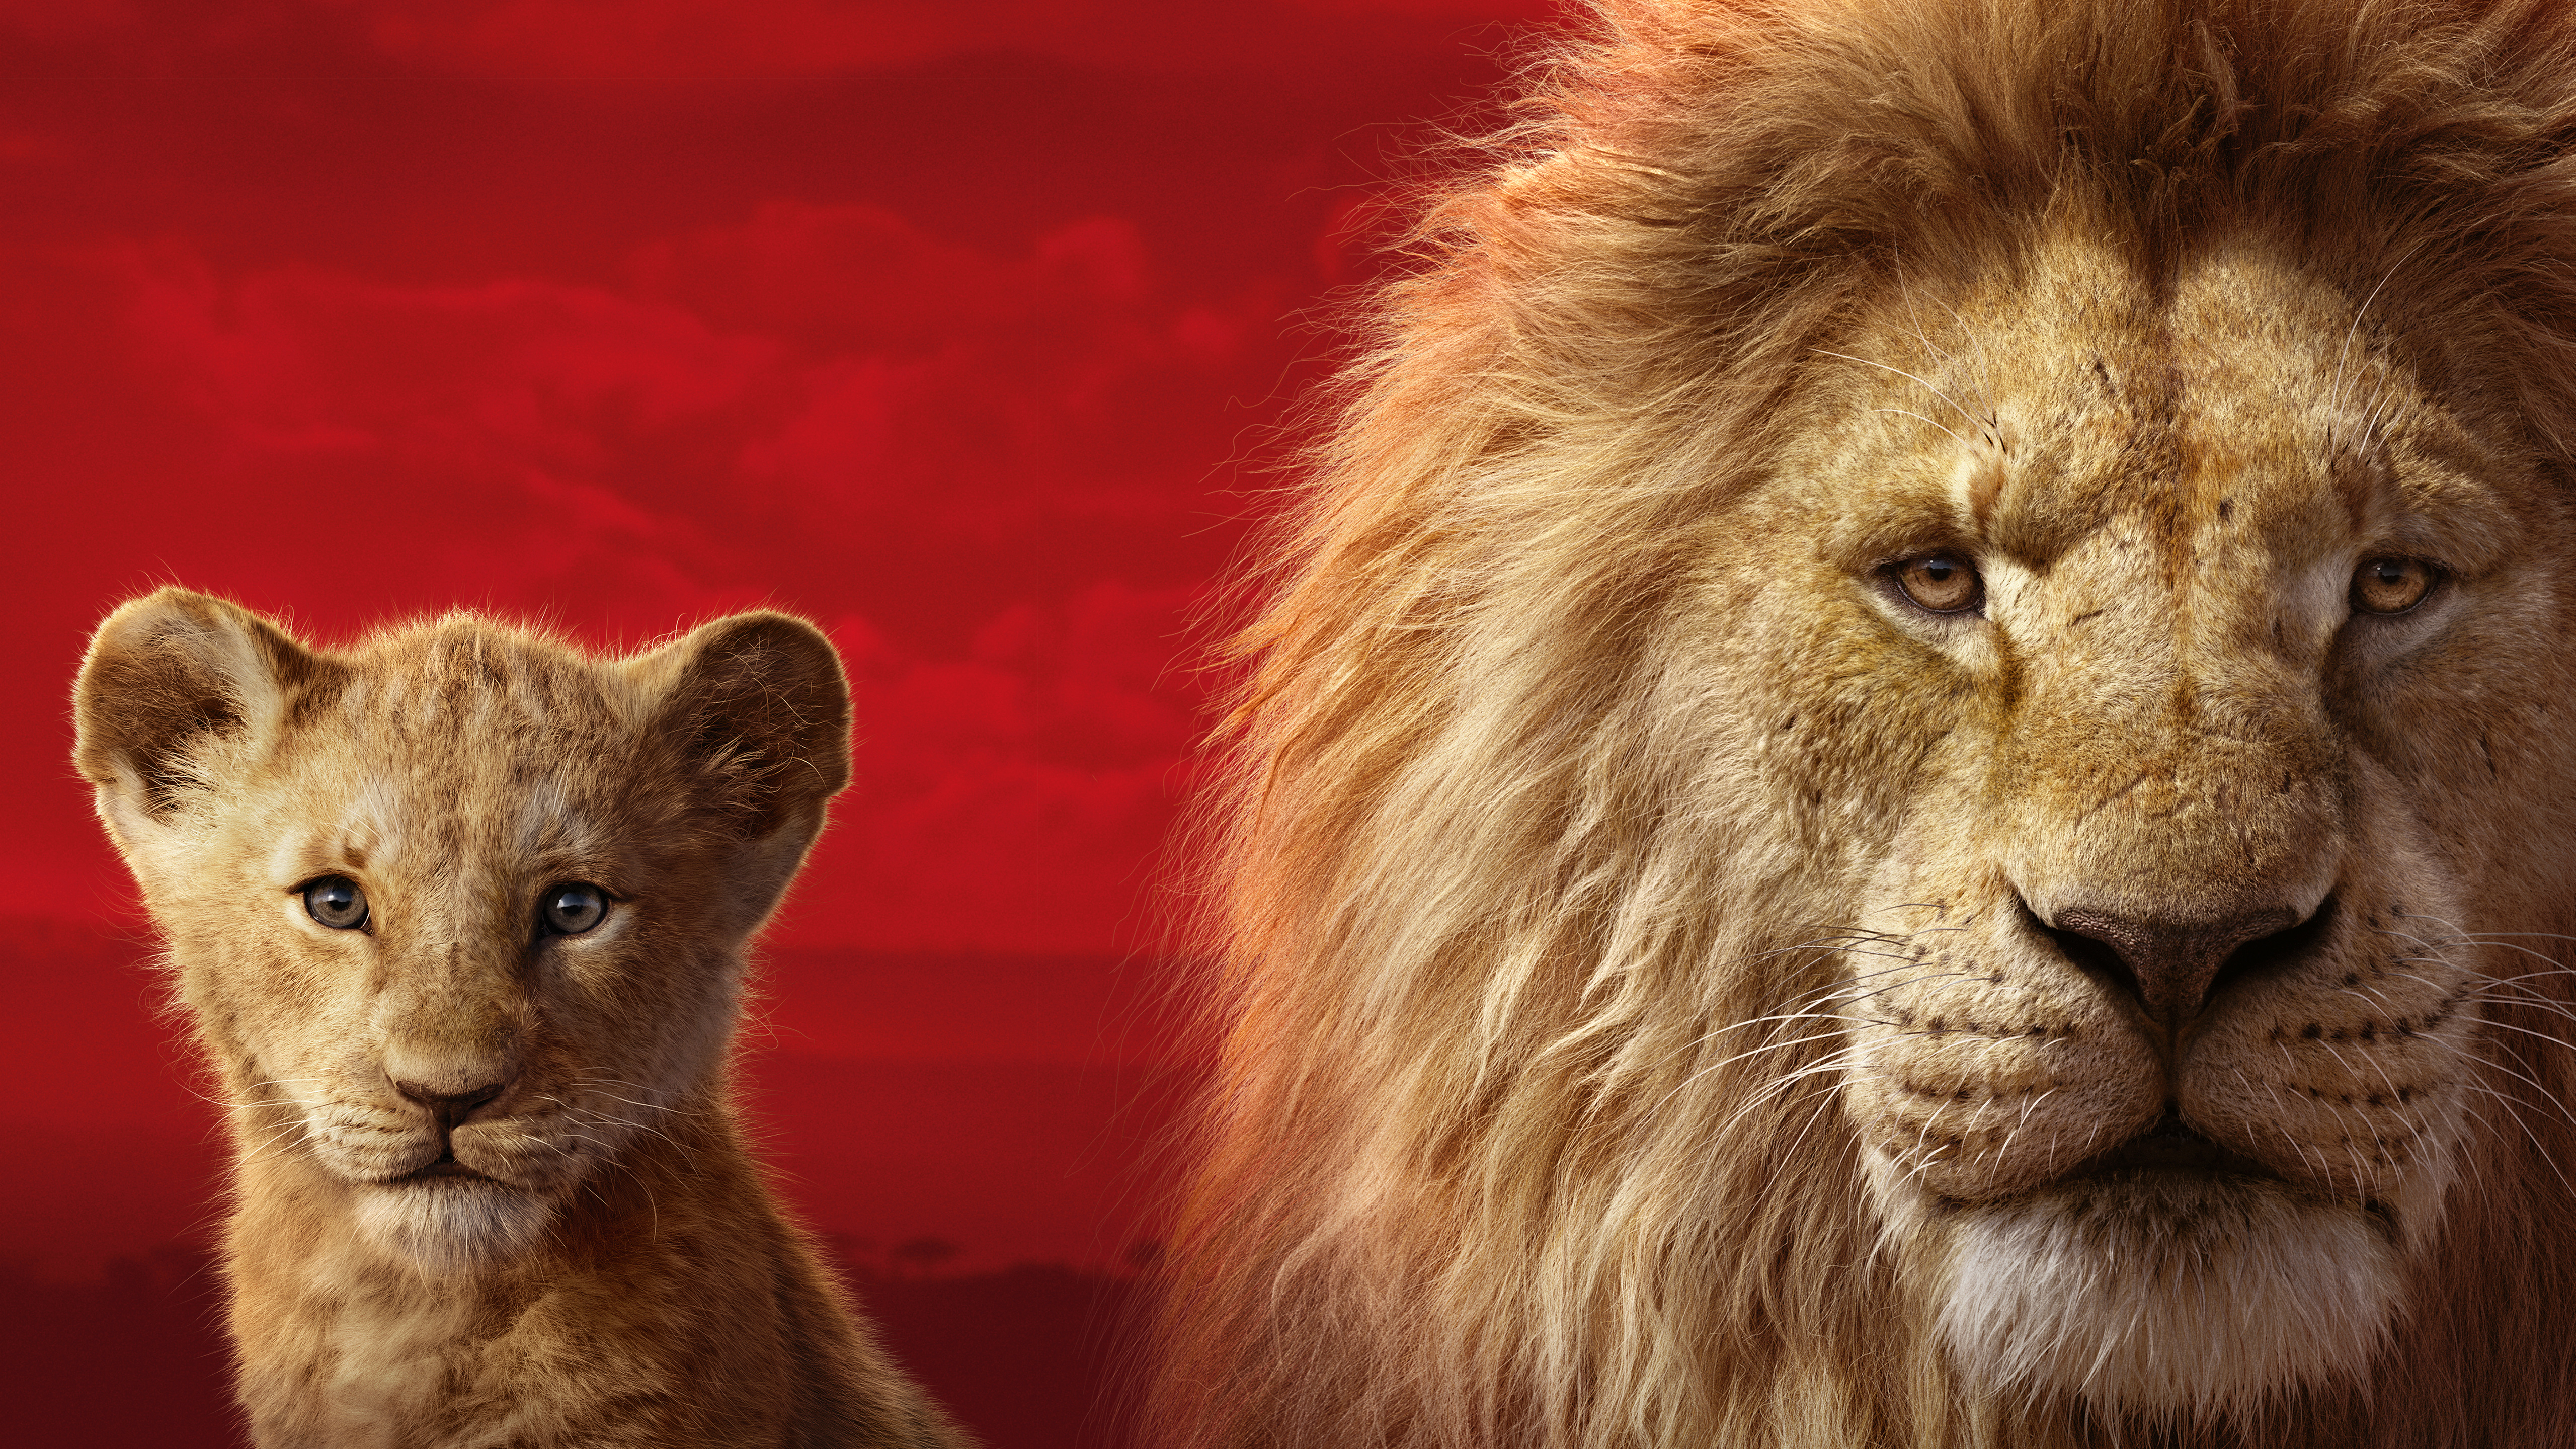 The Lion King 2019 5k Hd Movies 4k Wallpapers Images Backgrounds Photos And Pictures